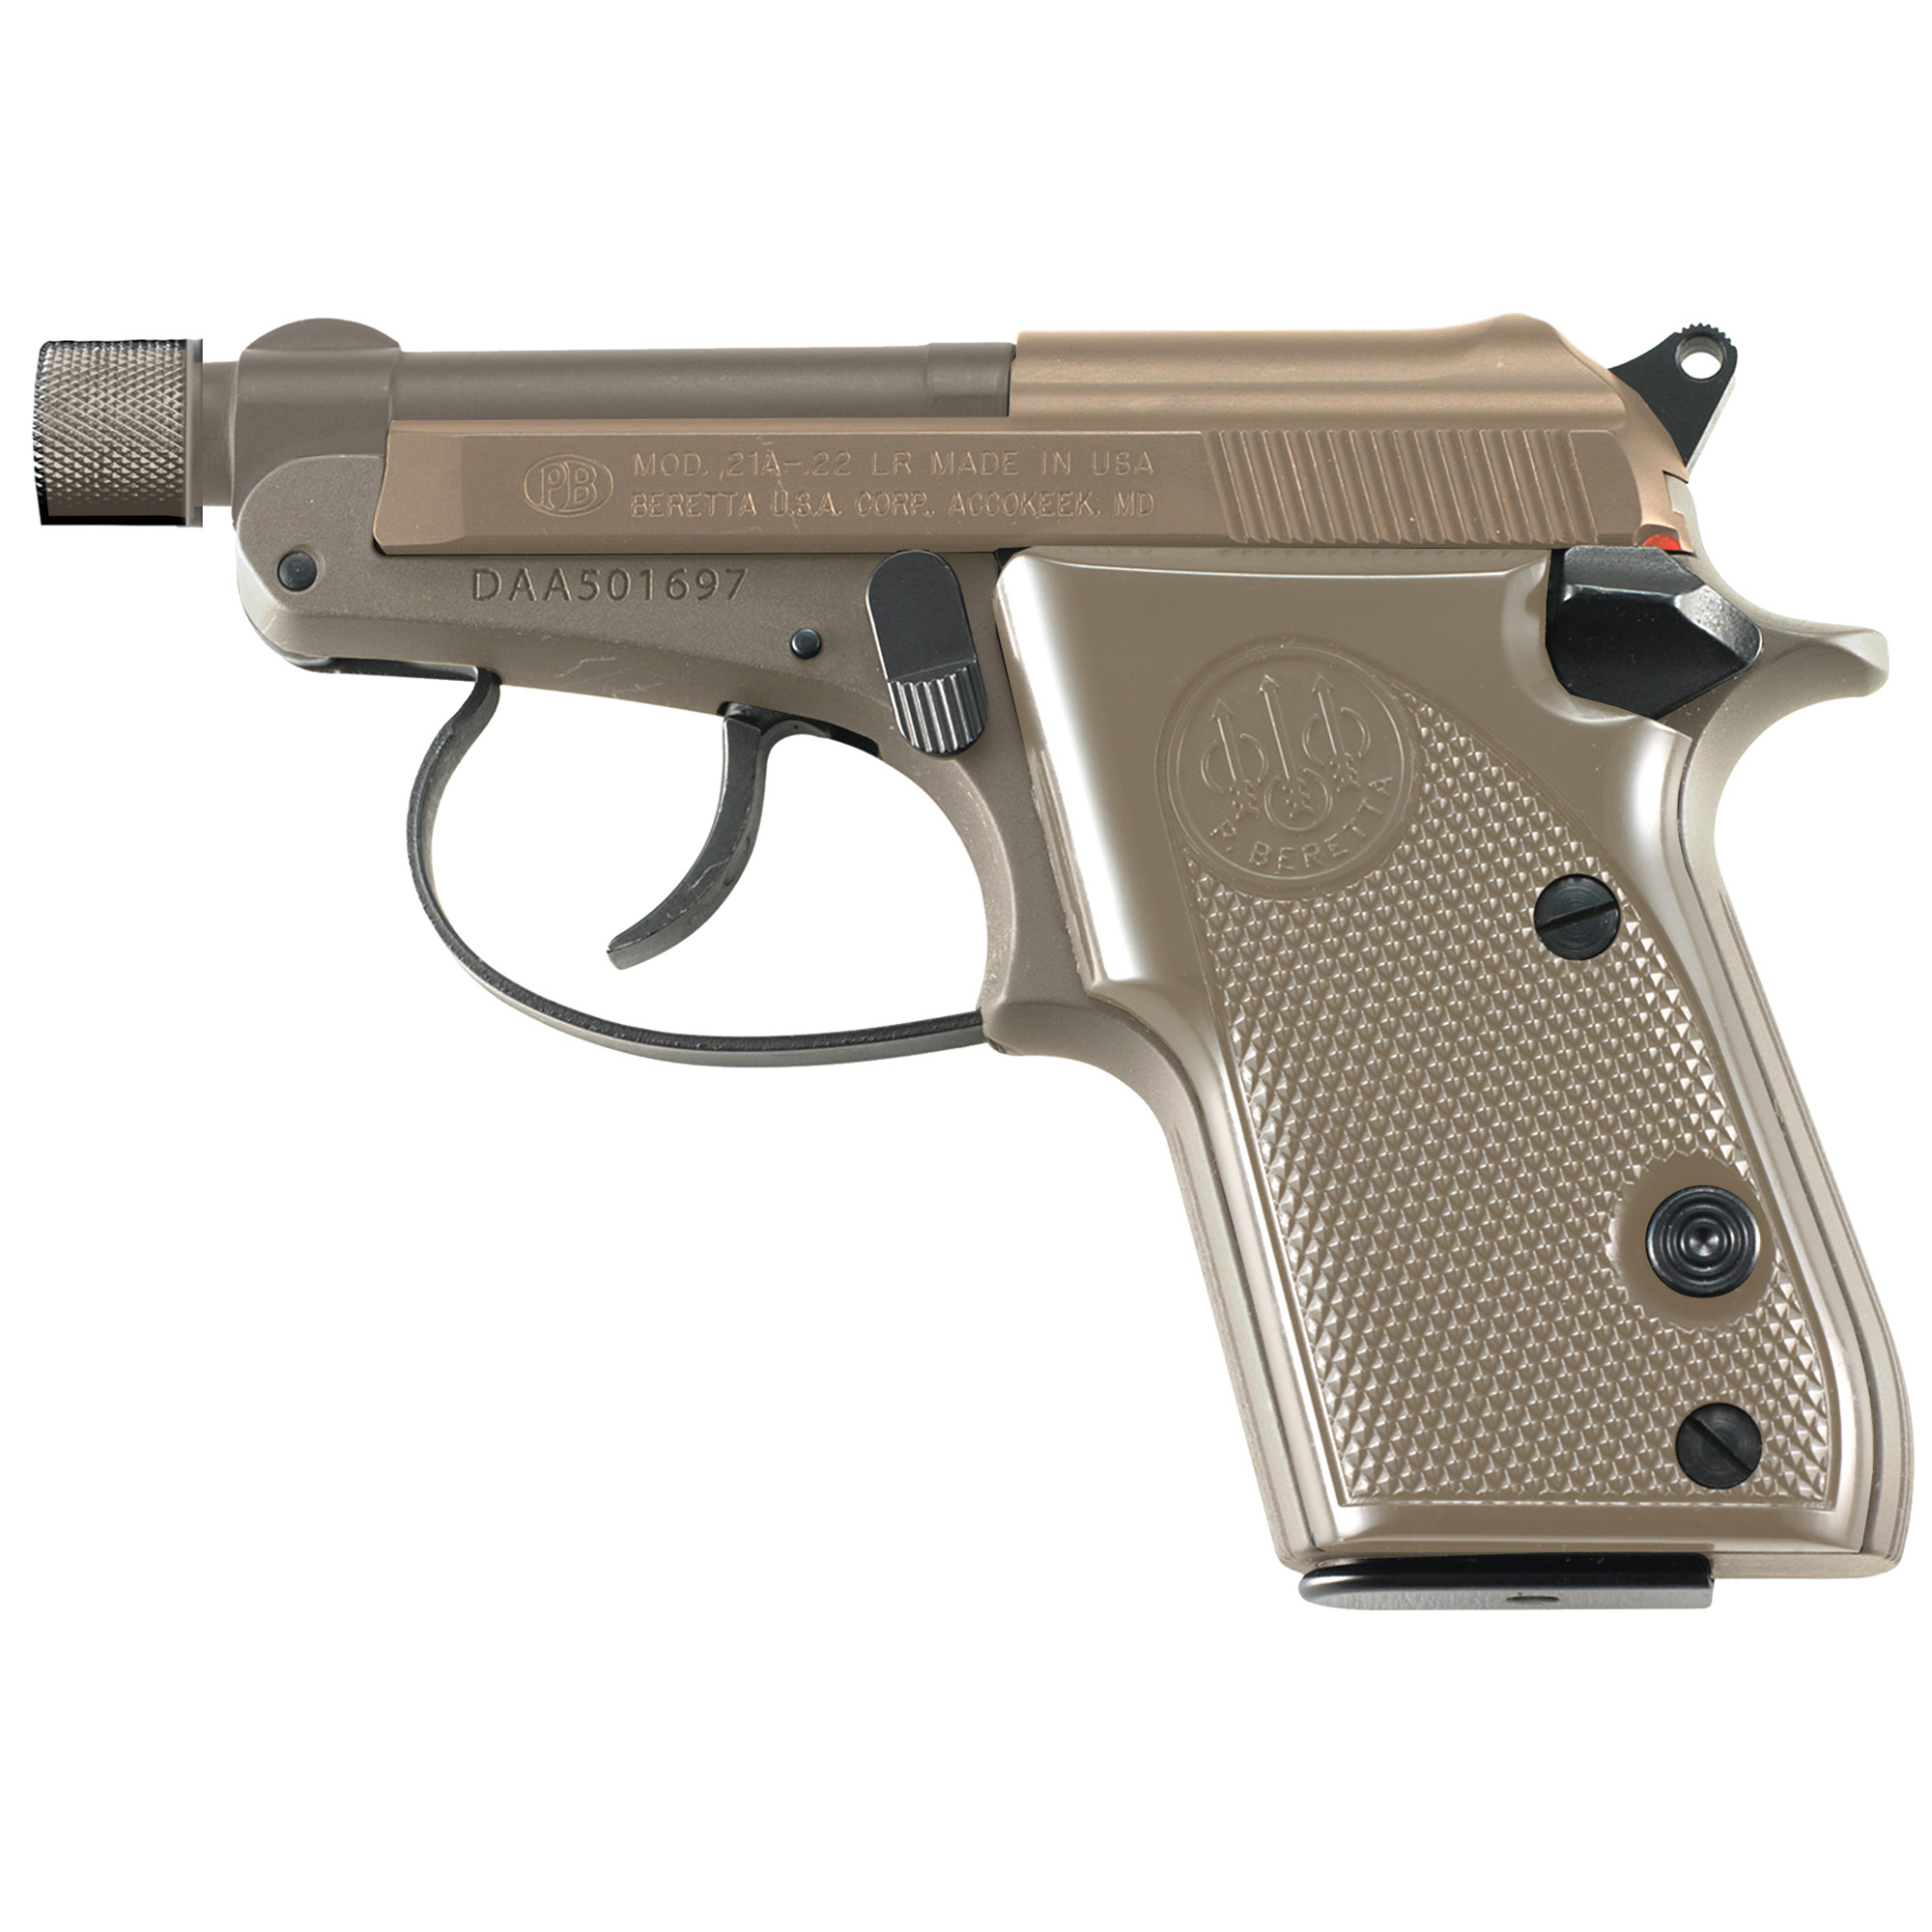 "Beretta 21a 22lr 2.9"" Th 7rd Fde"